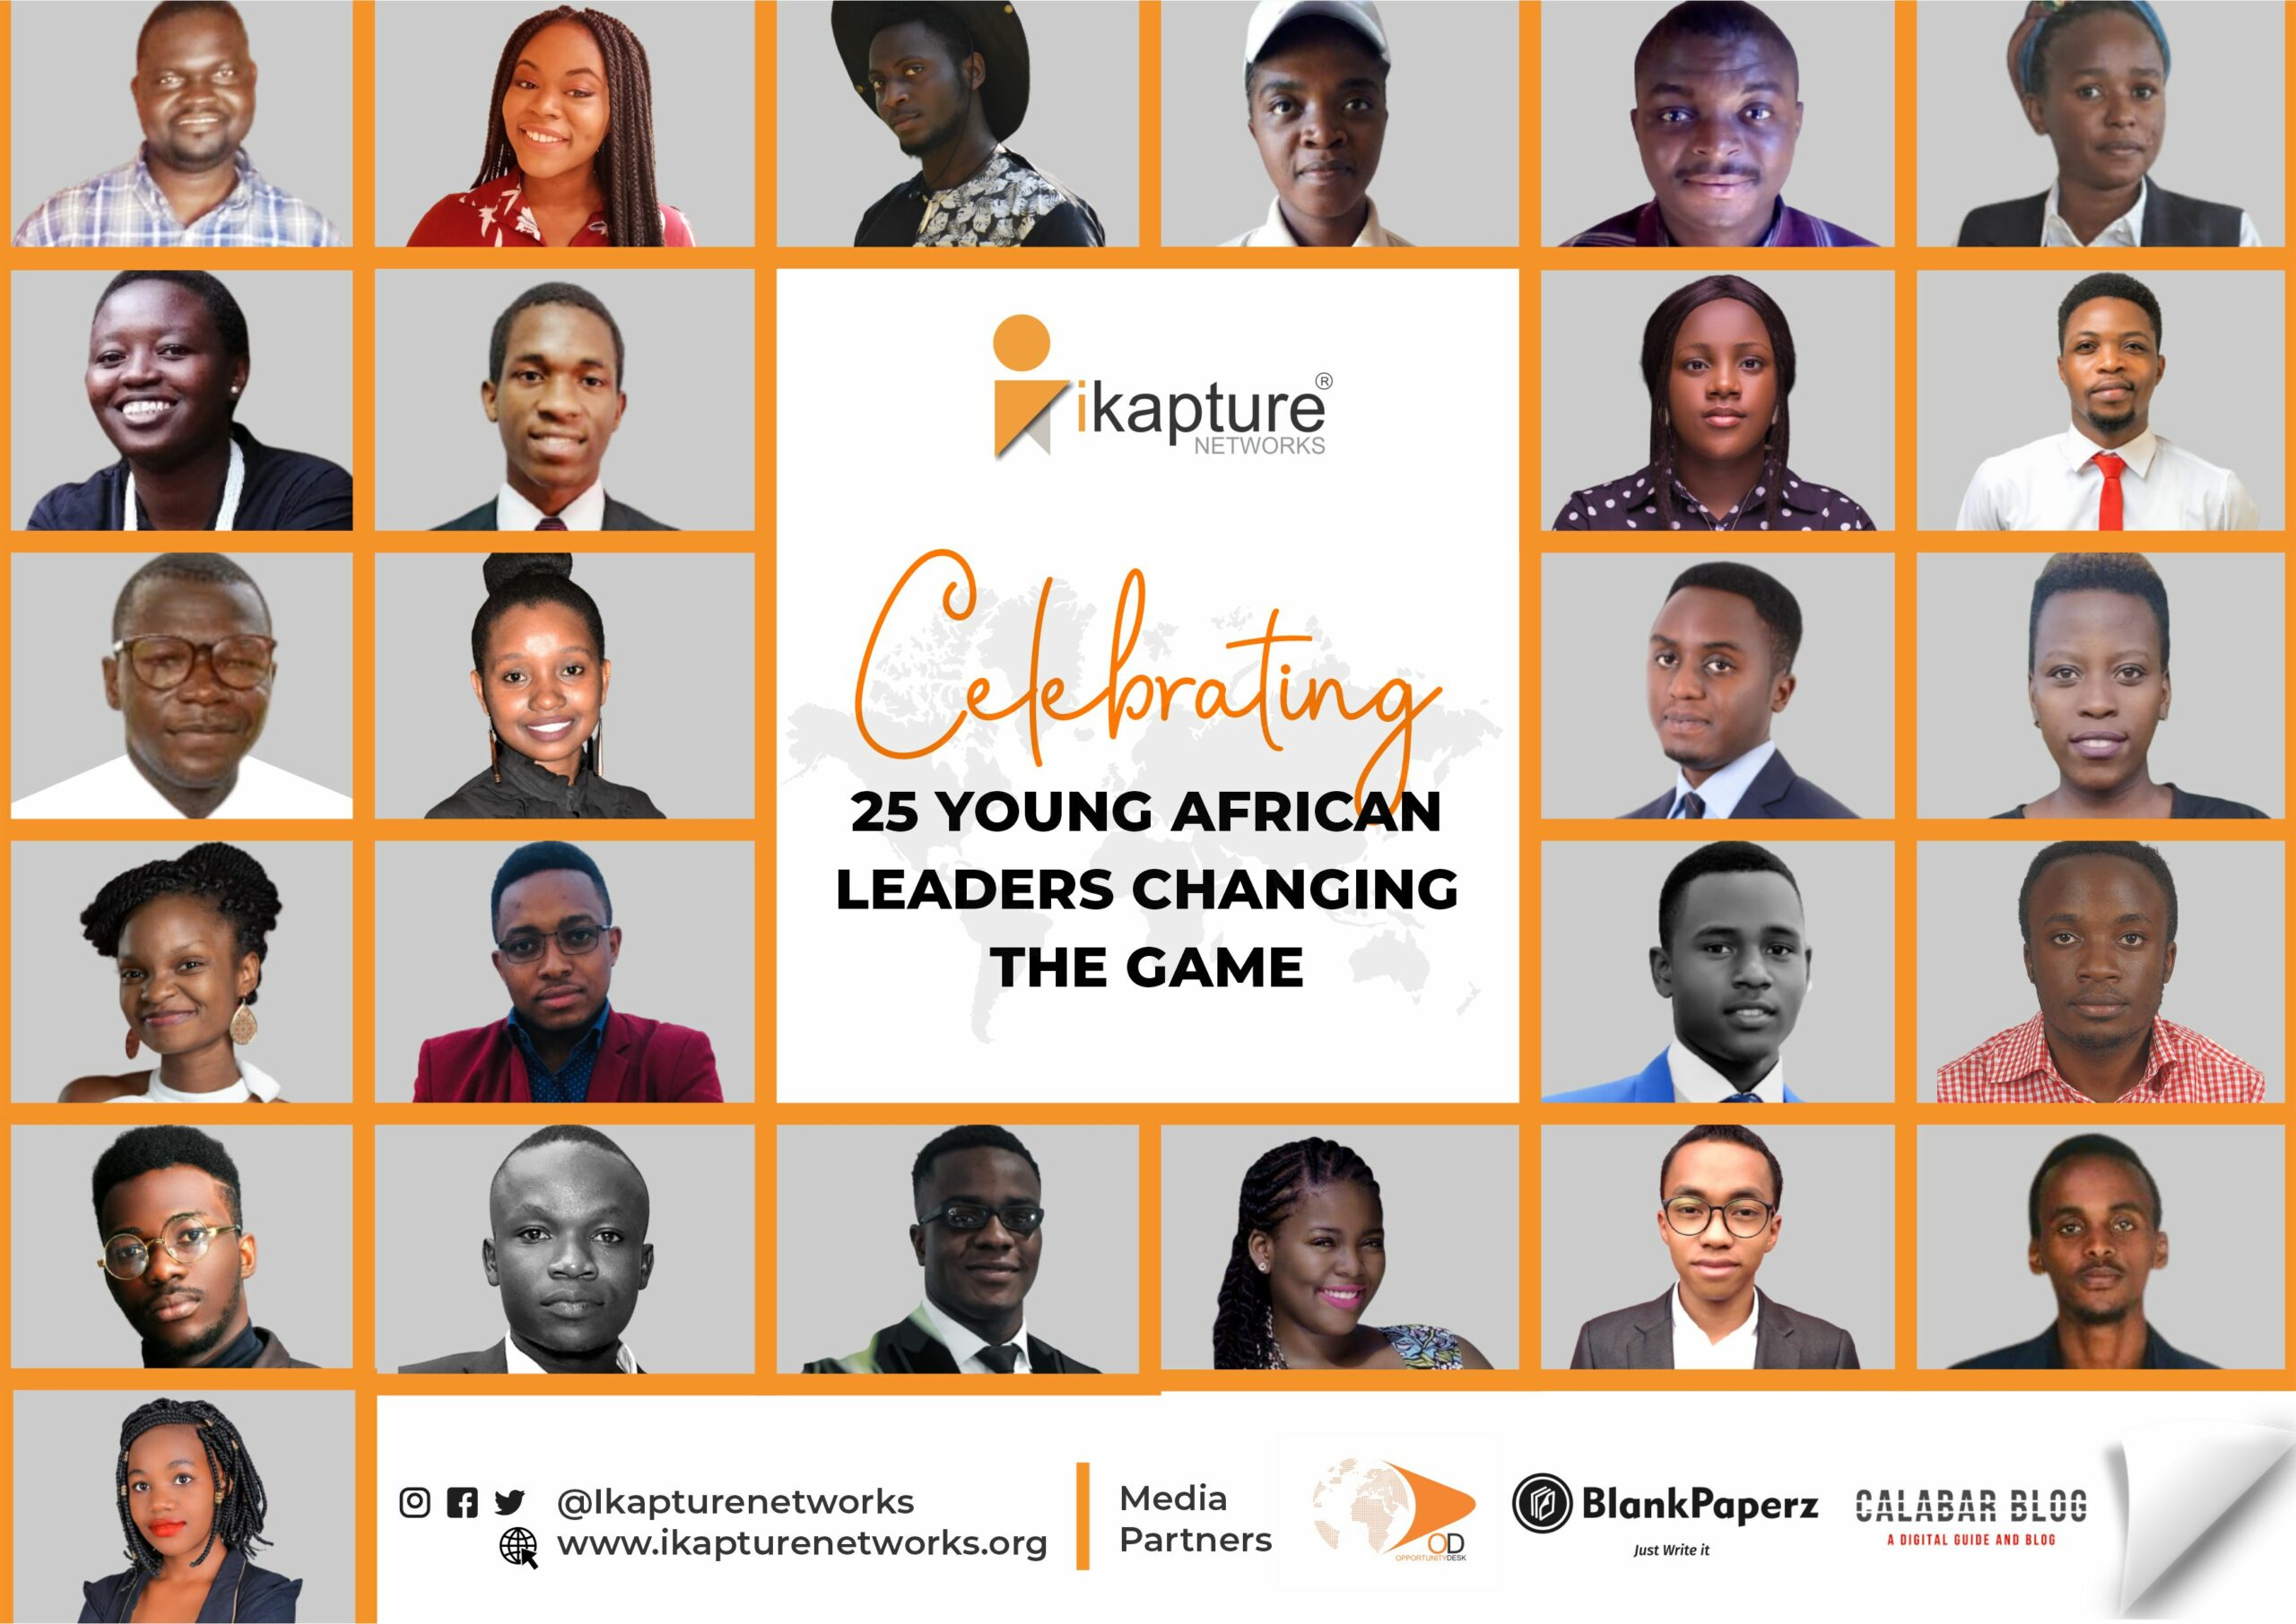 Announcing the iKapture 25 Under 25 Young Leaders Changing the Game in Africa